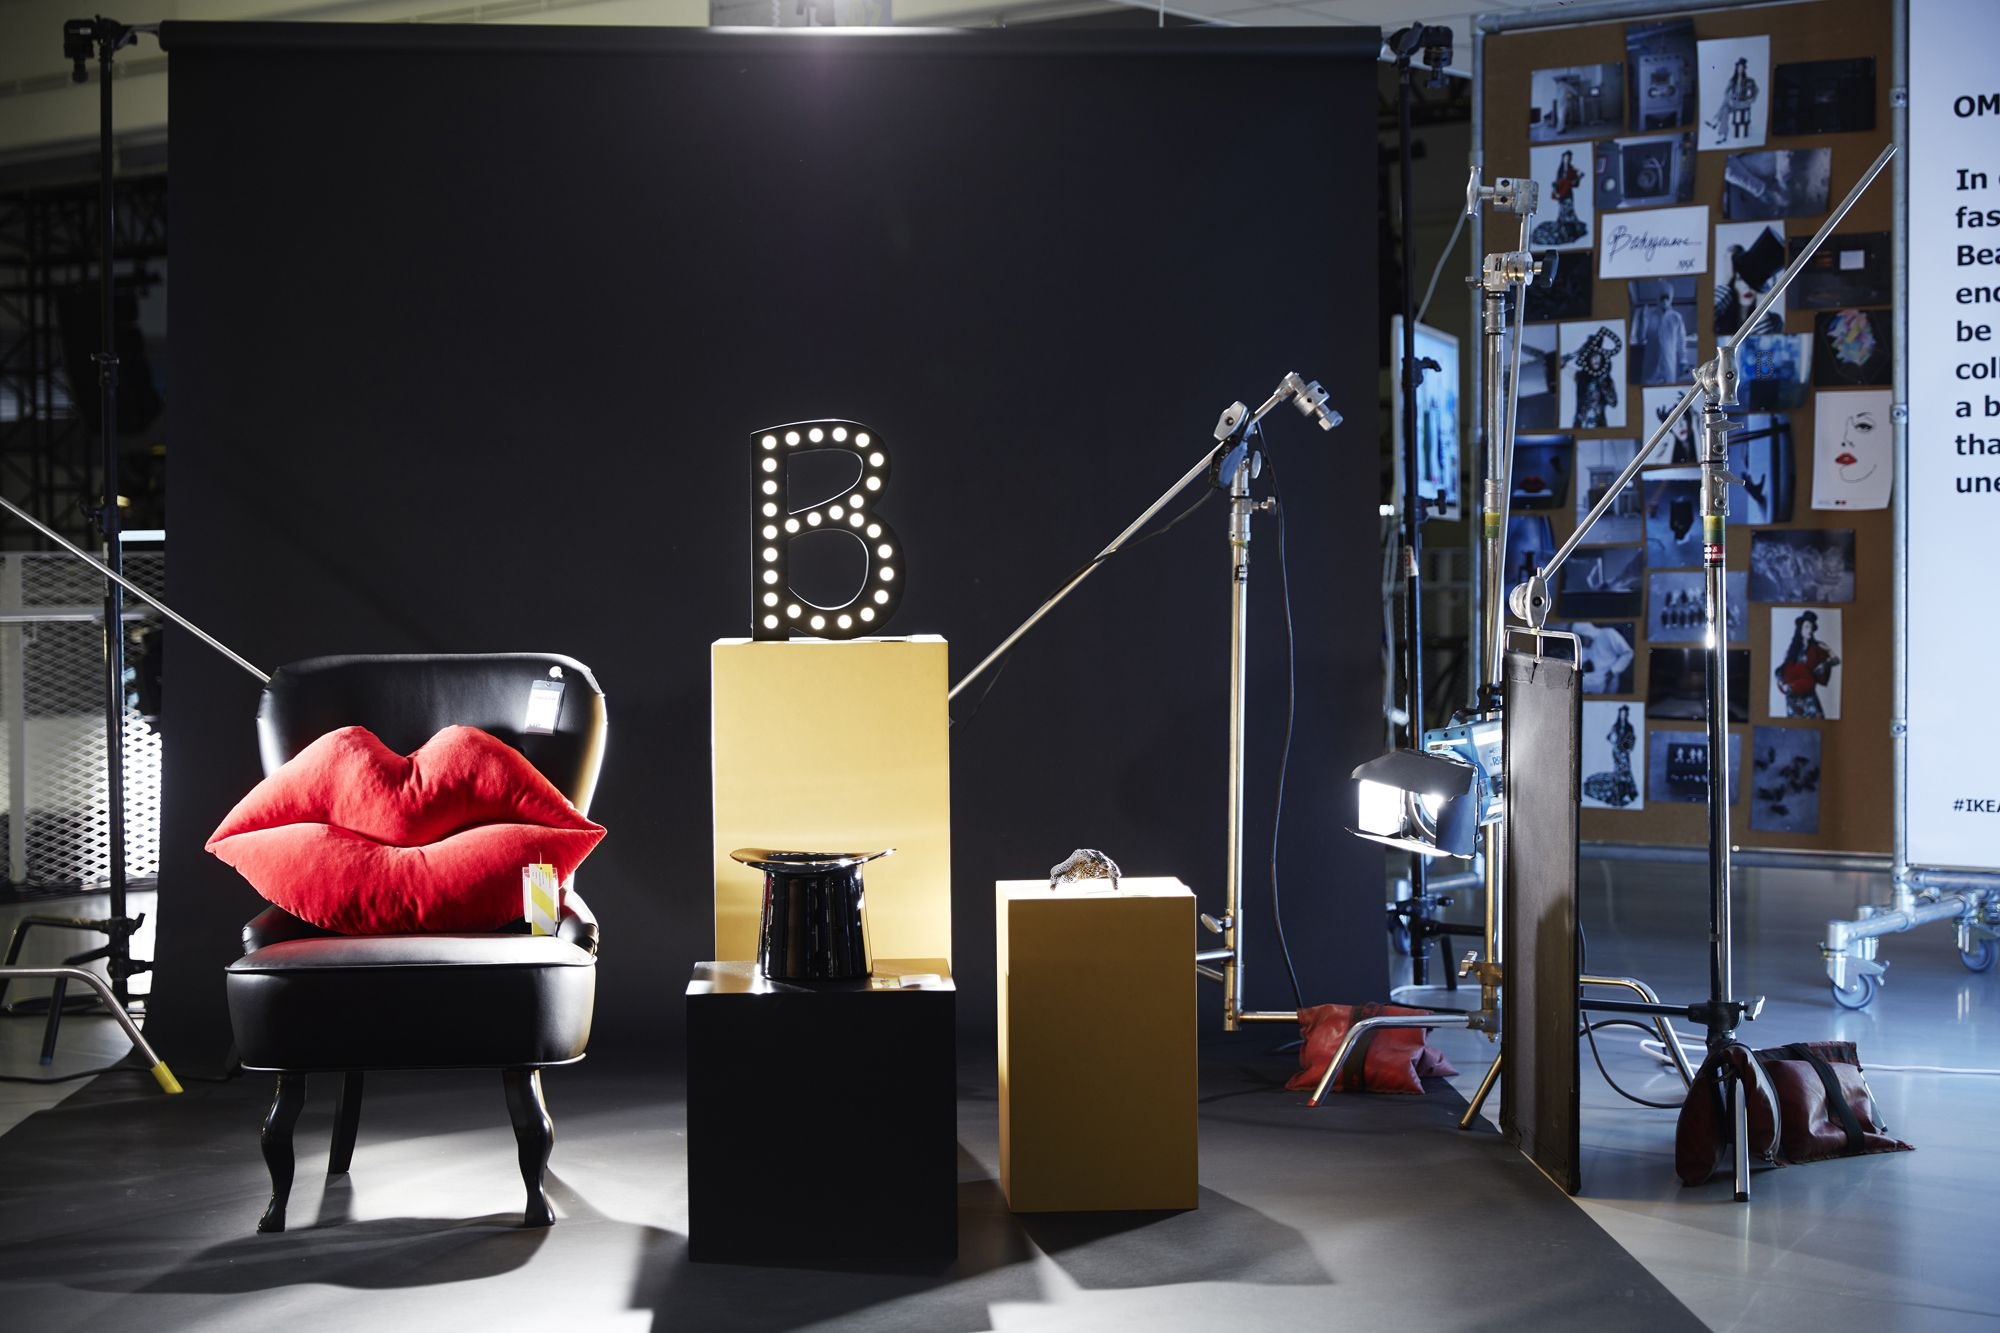 this ikea furniture line from bea akerlund is eccentric lady gaga and beyonce stylist